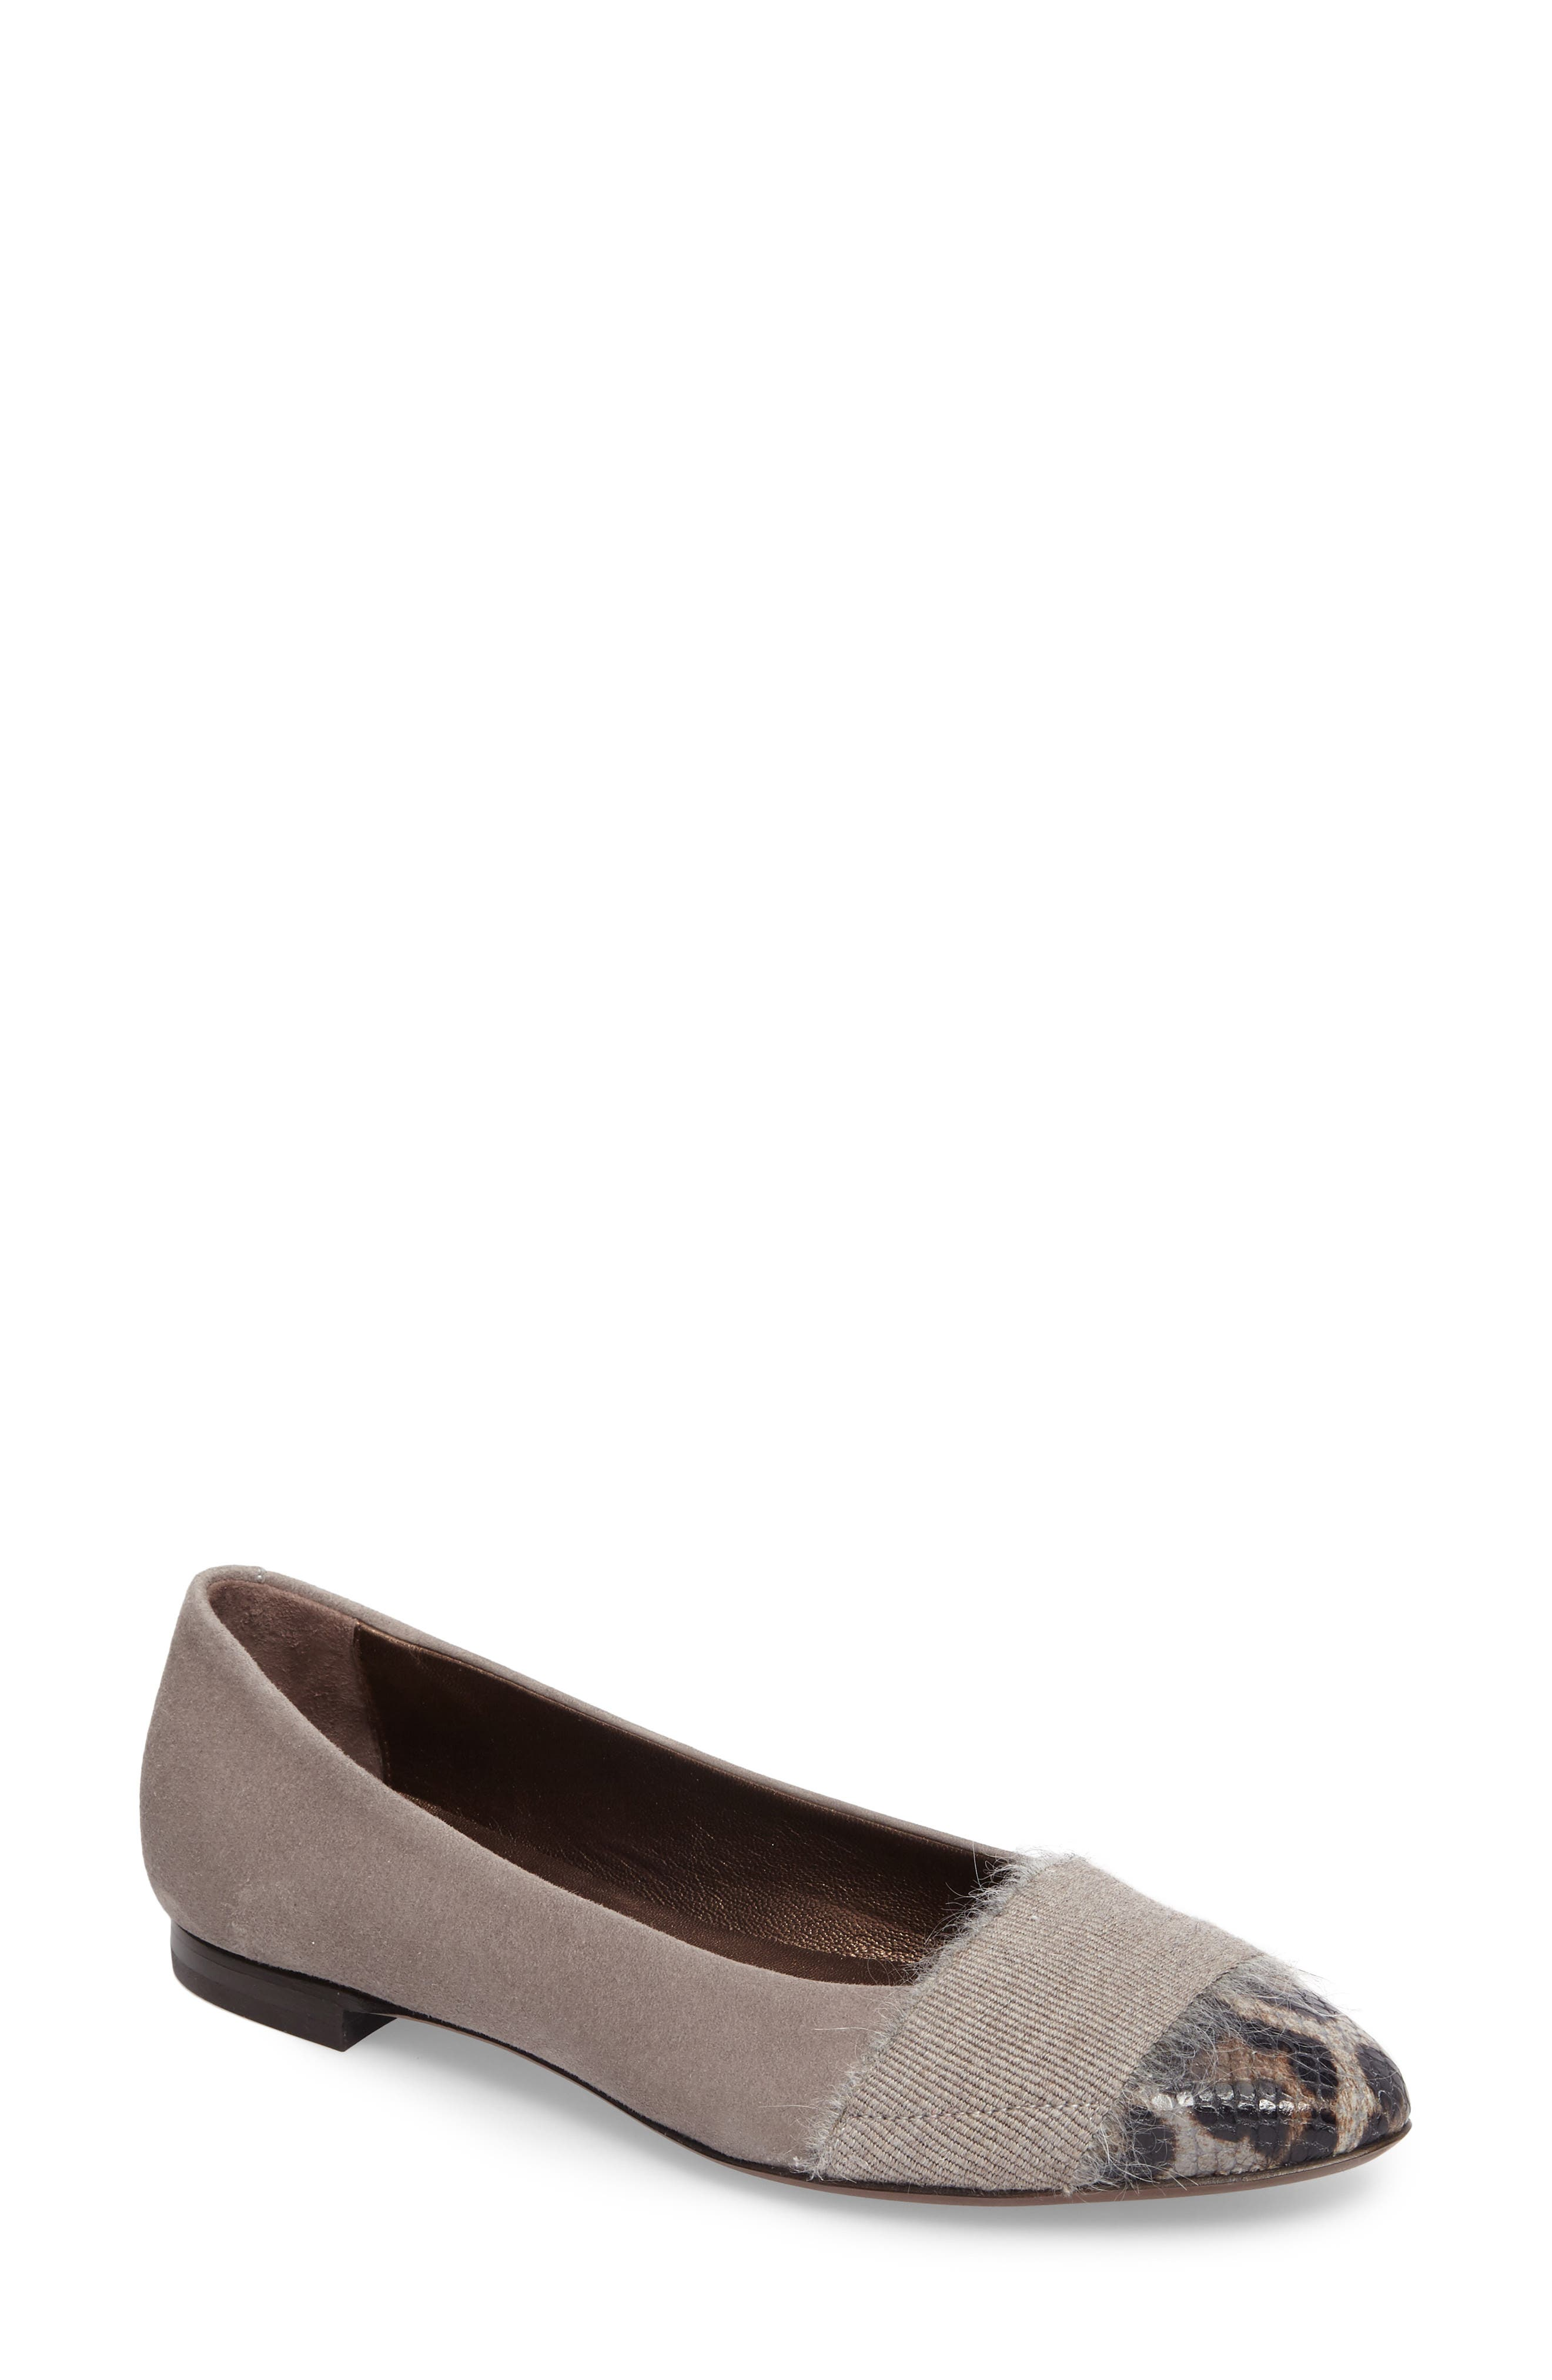 Belted Ballet Flat,                             Main thumbnail 2, color,